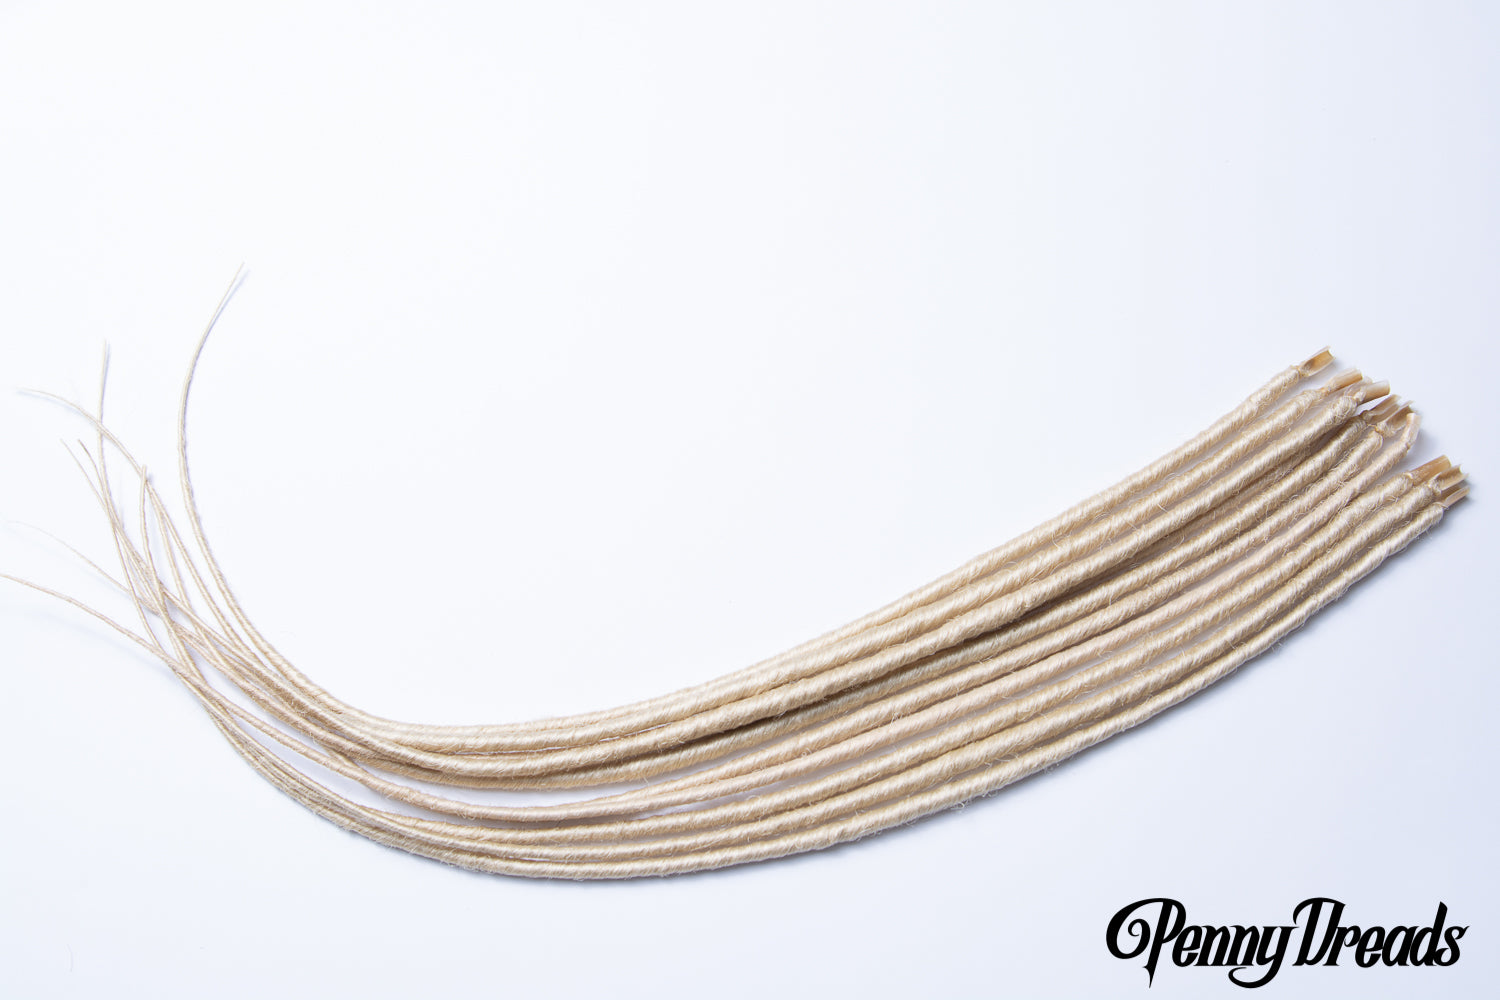 613 Blonde U-Tip Synthetic Dreadlocks (10 pieces) - Penny Dreads & Wigs